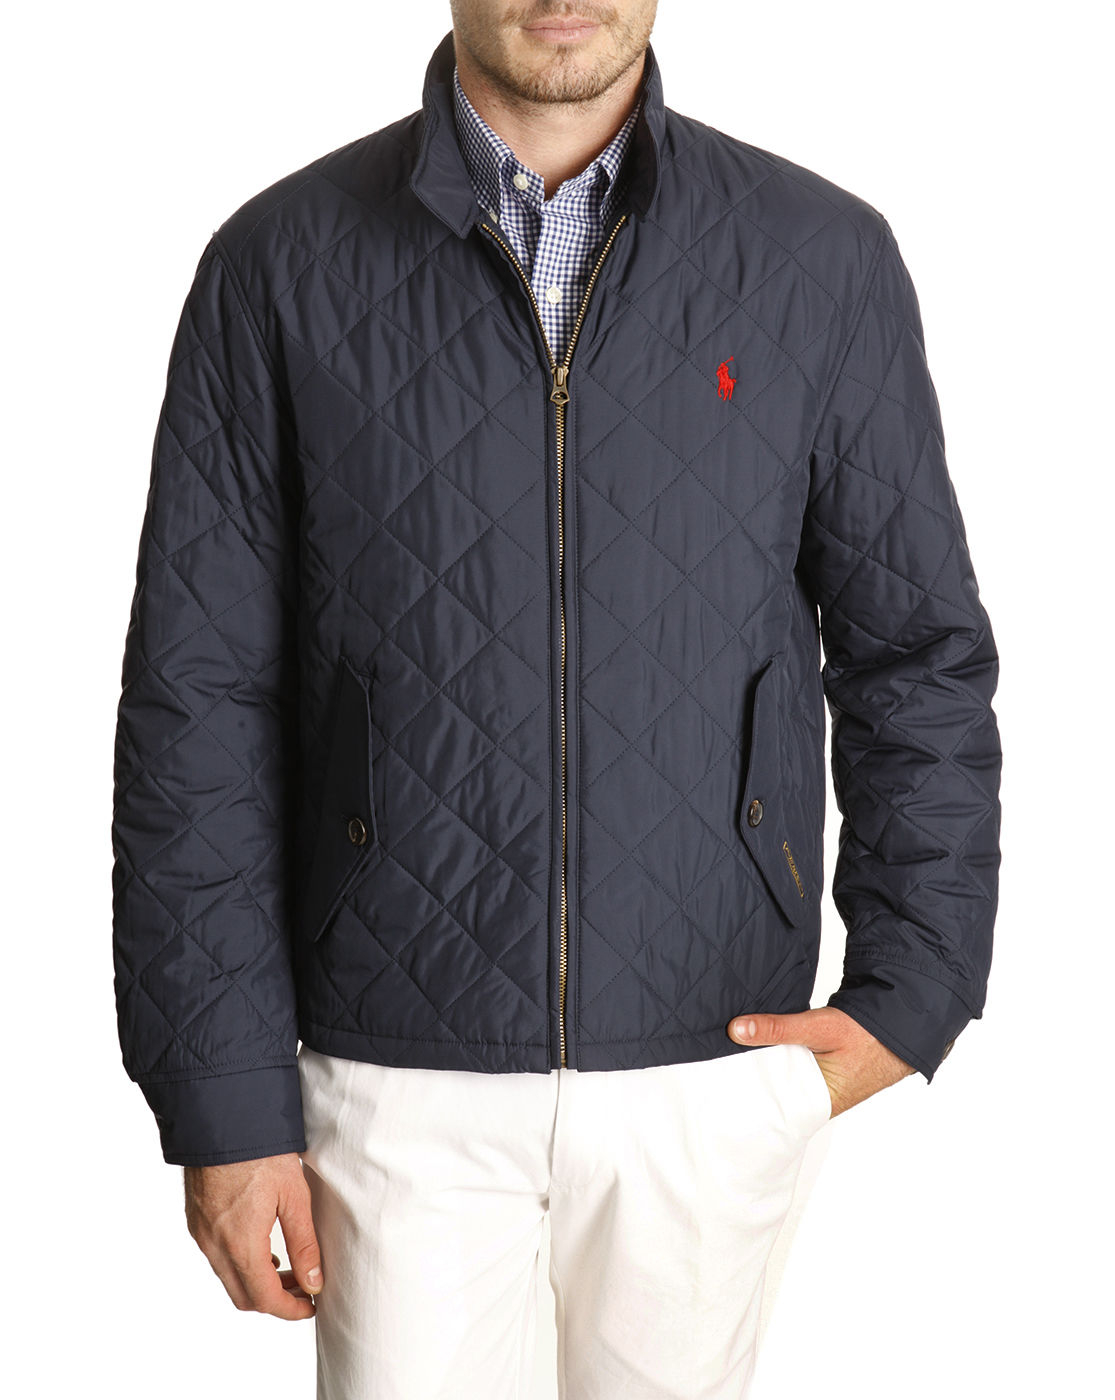 polo ralph lauren navy blue quilted jacket in blue for men. Black Bedroom Furniture Sets. Home Design Ideas